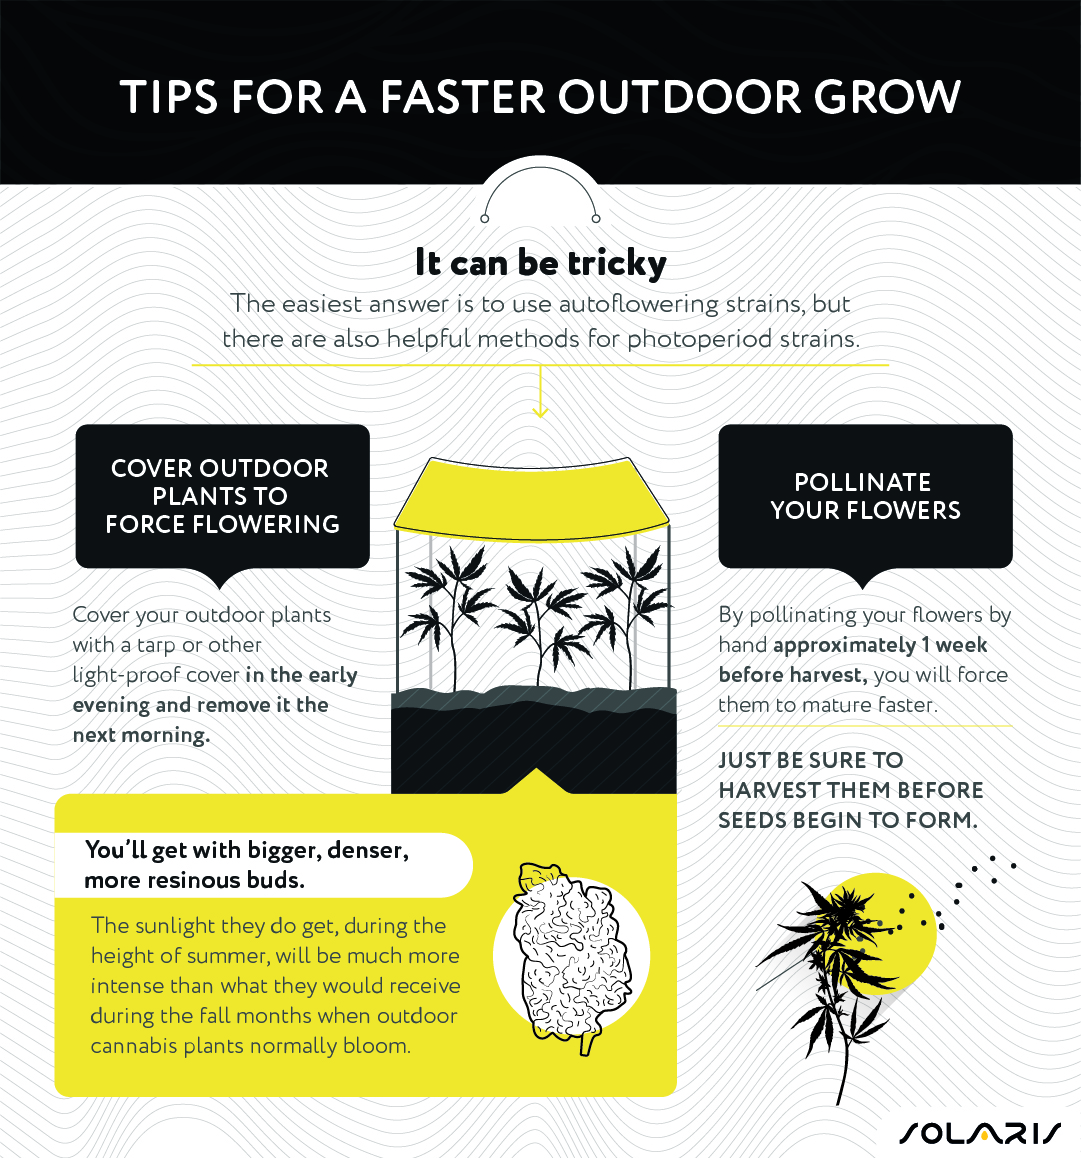 Tips for a faster outdoor grow